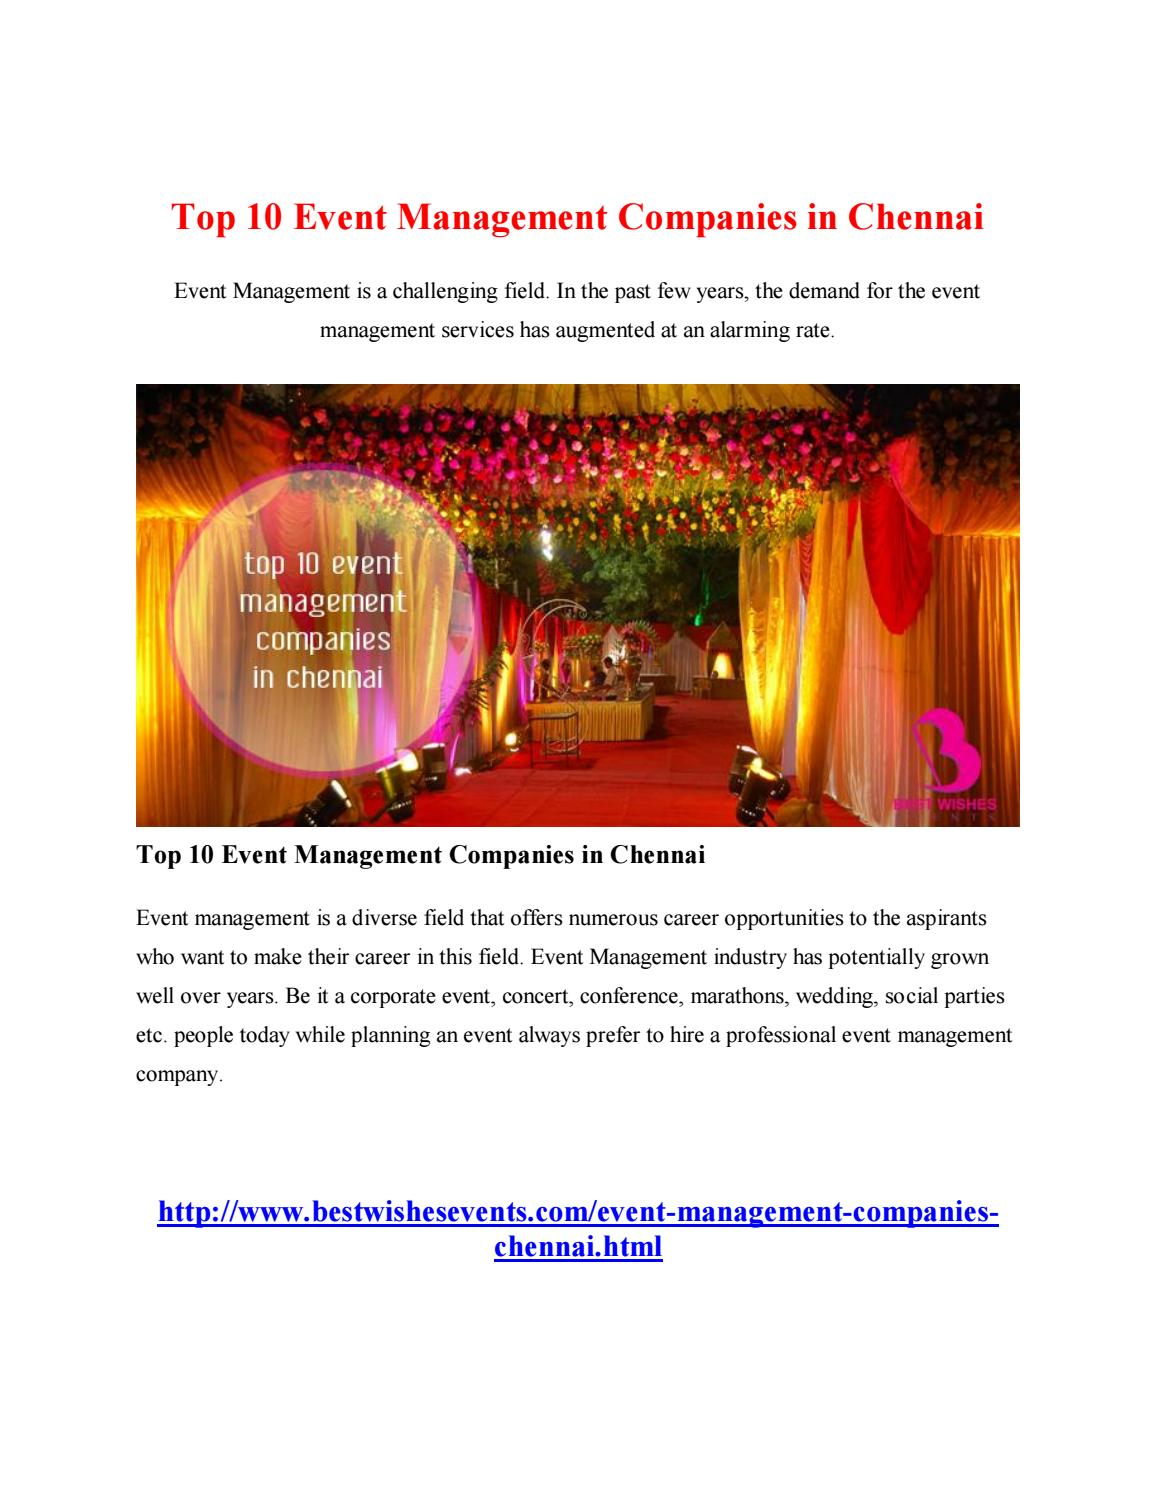 3 top 10 event management companies in chennai by